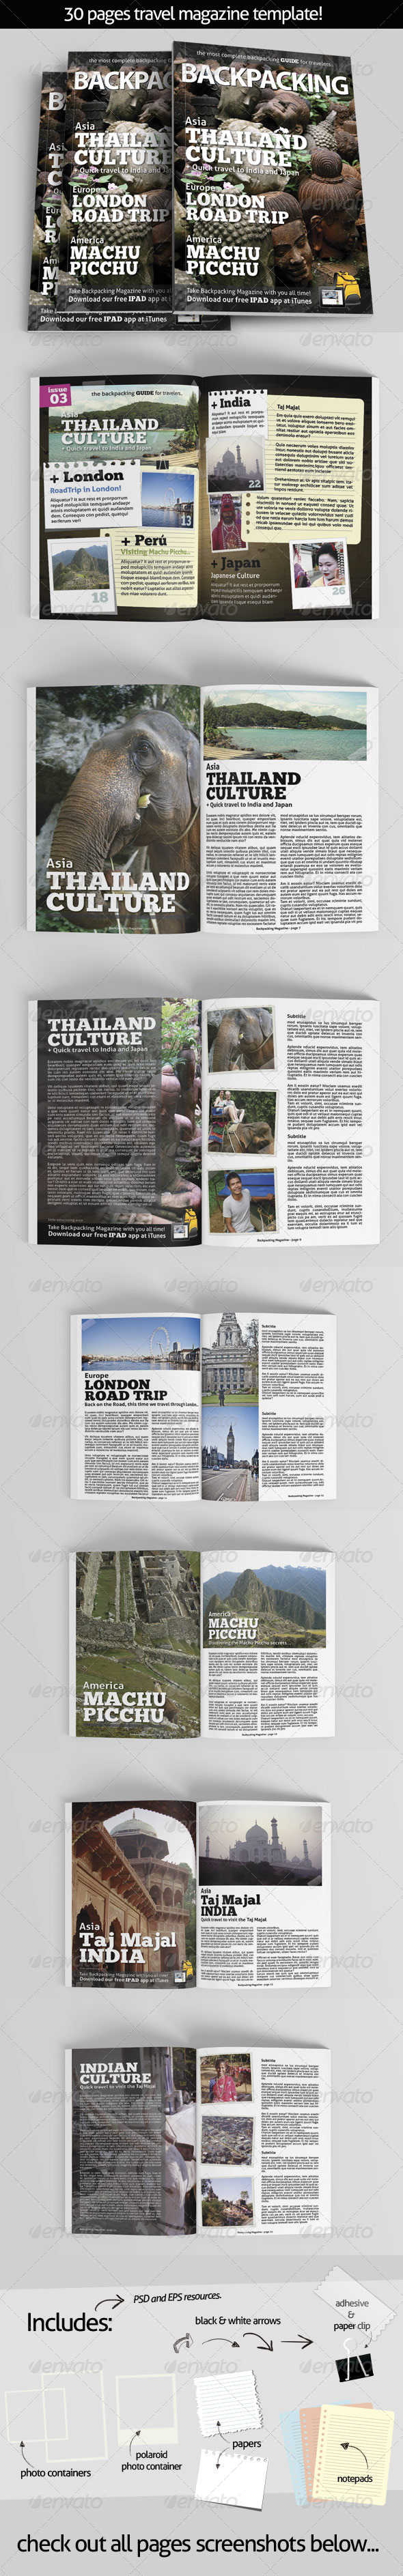 GraphicRiver BackPacking Magazine Template for Print 7771672